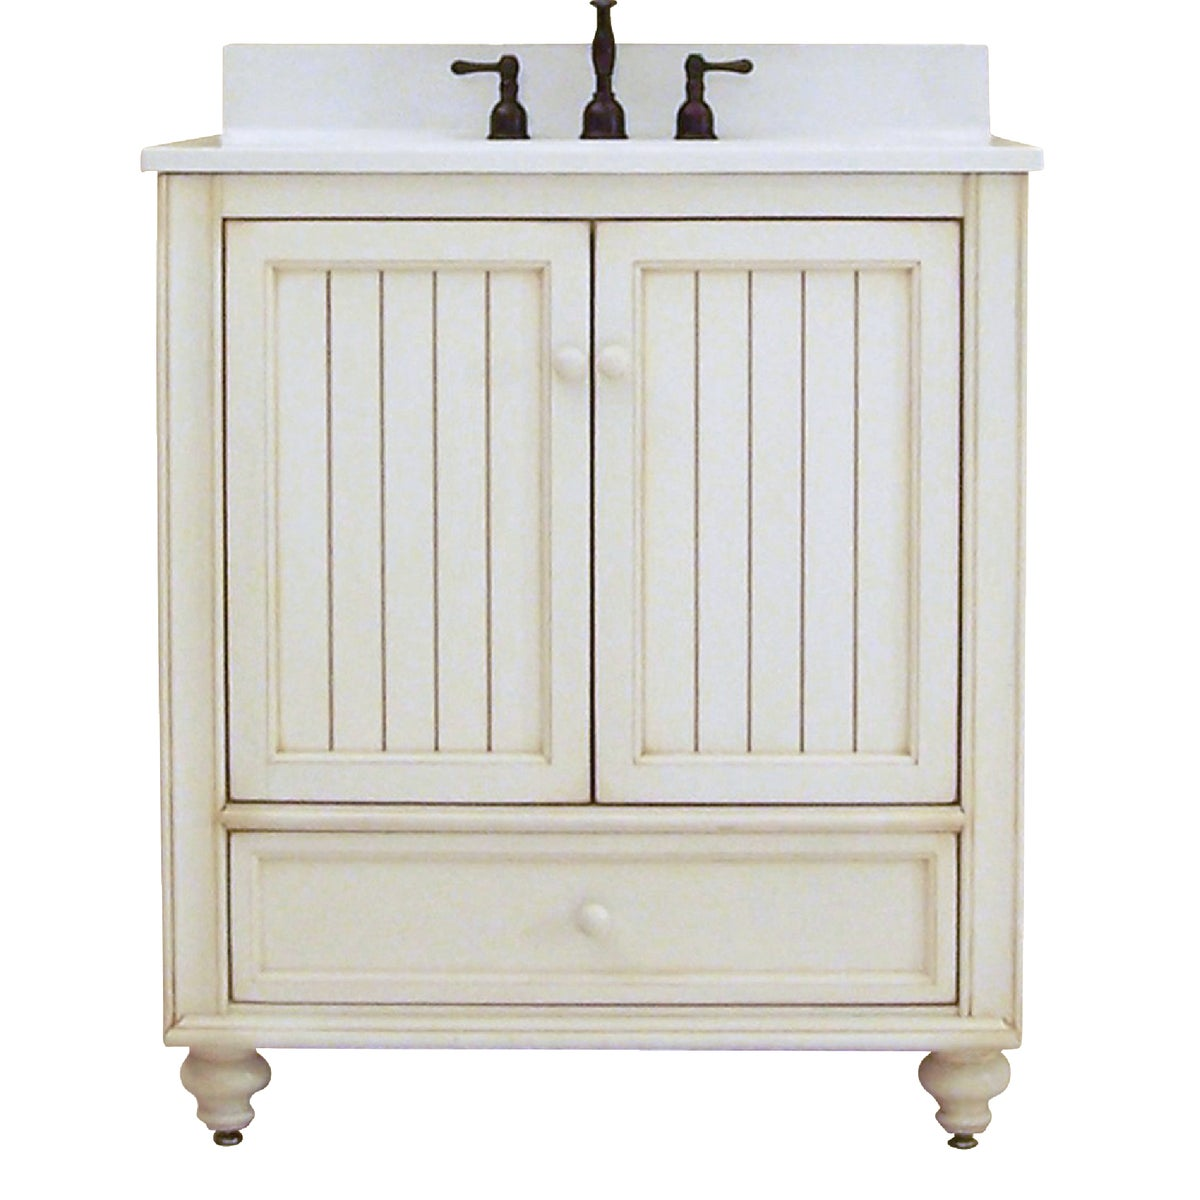 30X21 WH BSTL BCH VANITY - BB3021D by Sunnywood Products